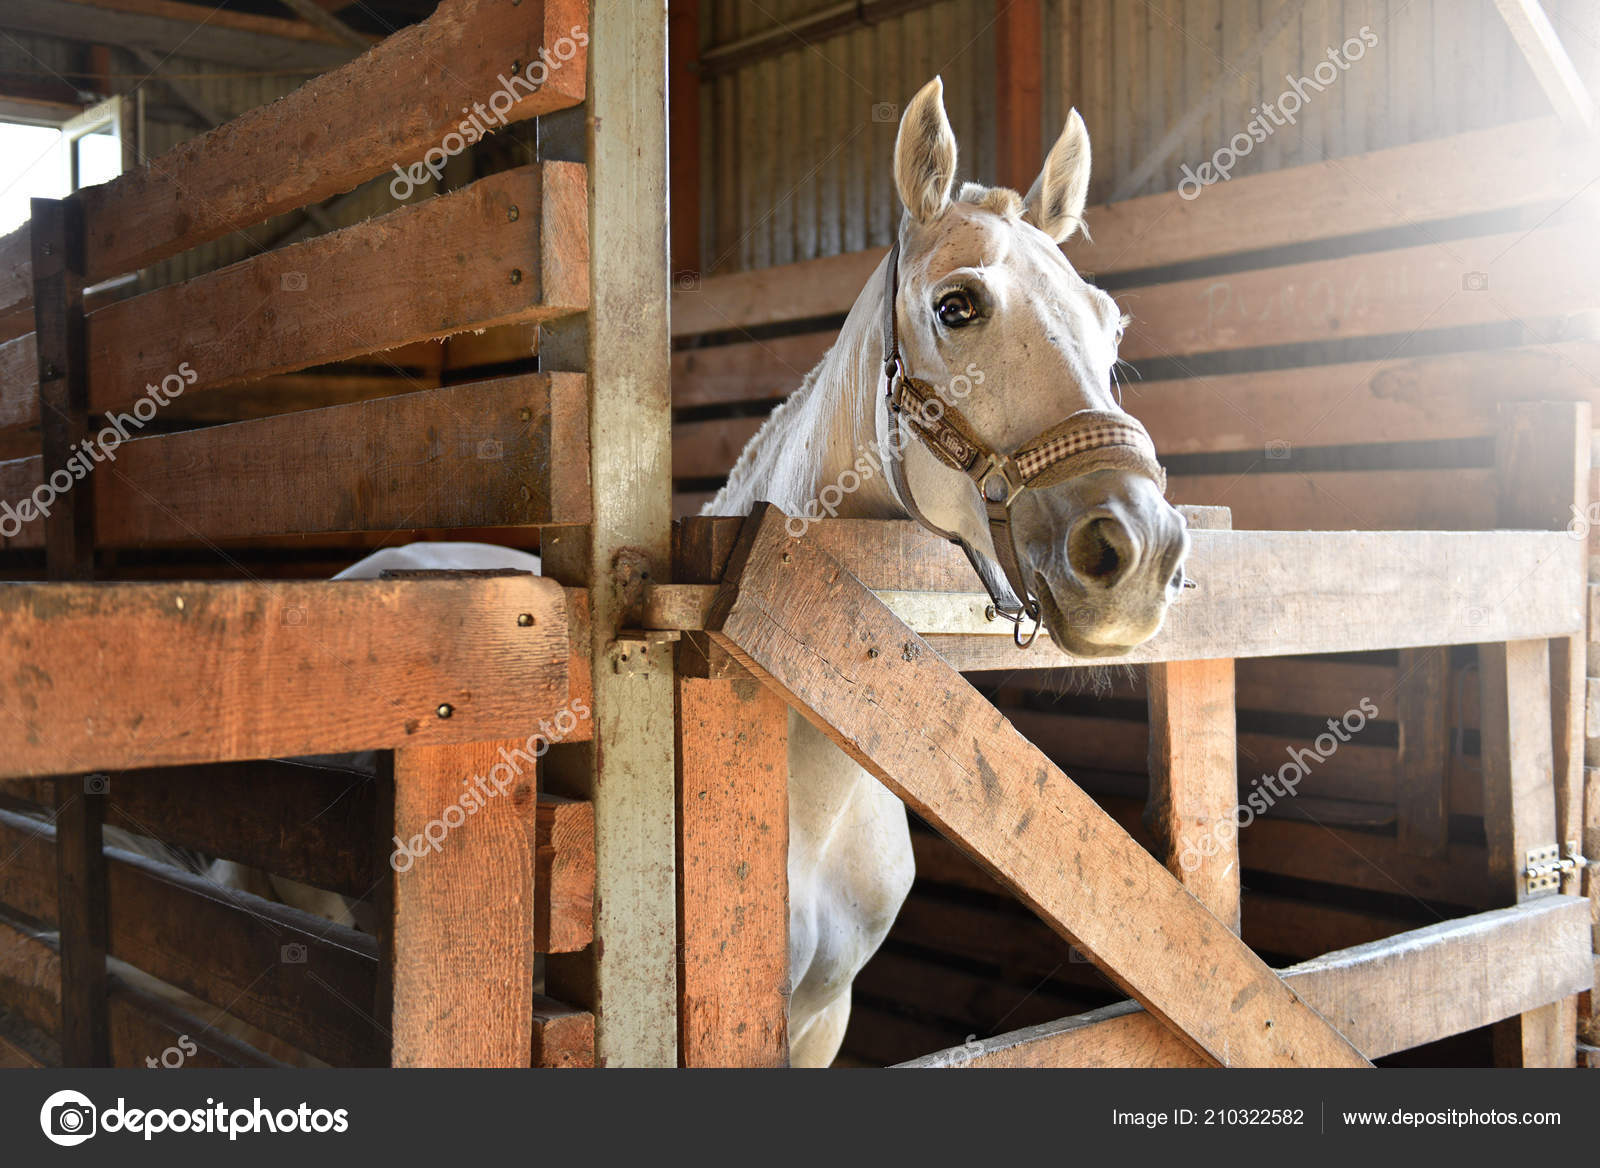 Pictures Real Life Horse White Horse Stable Stock Photo C Dedukh 210322582